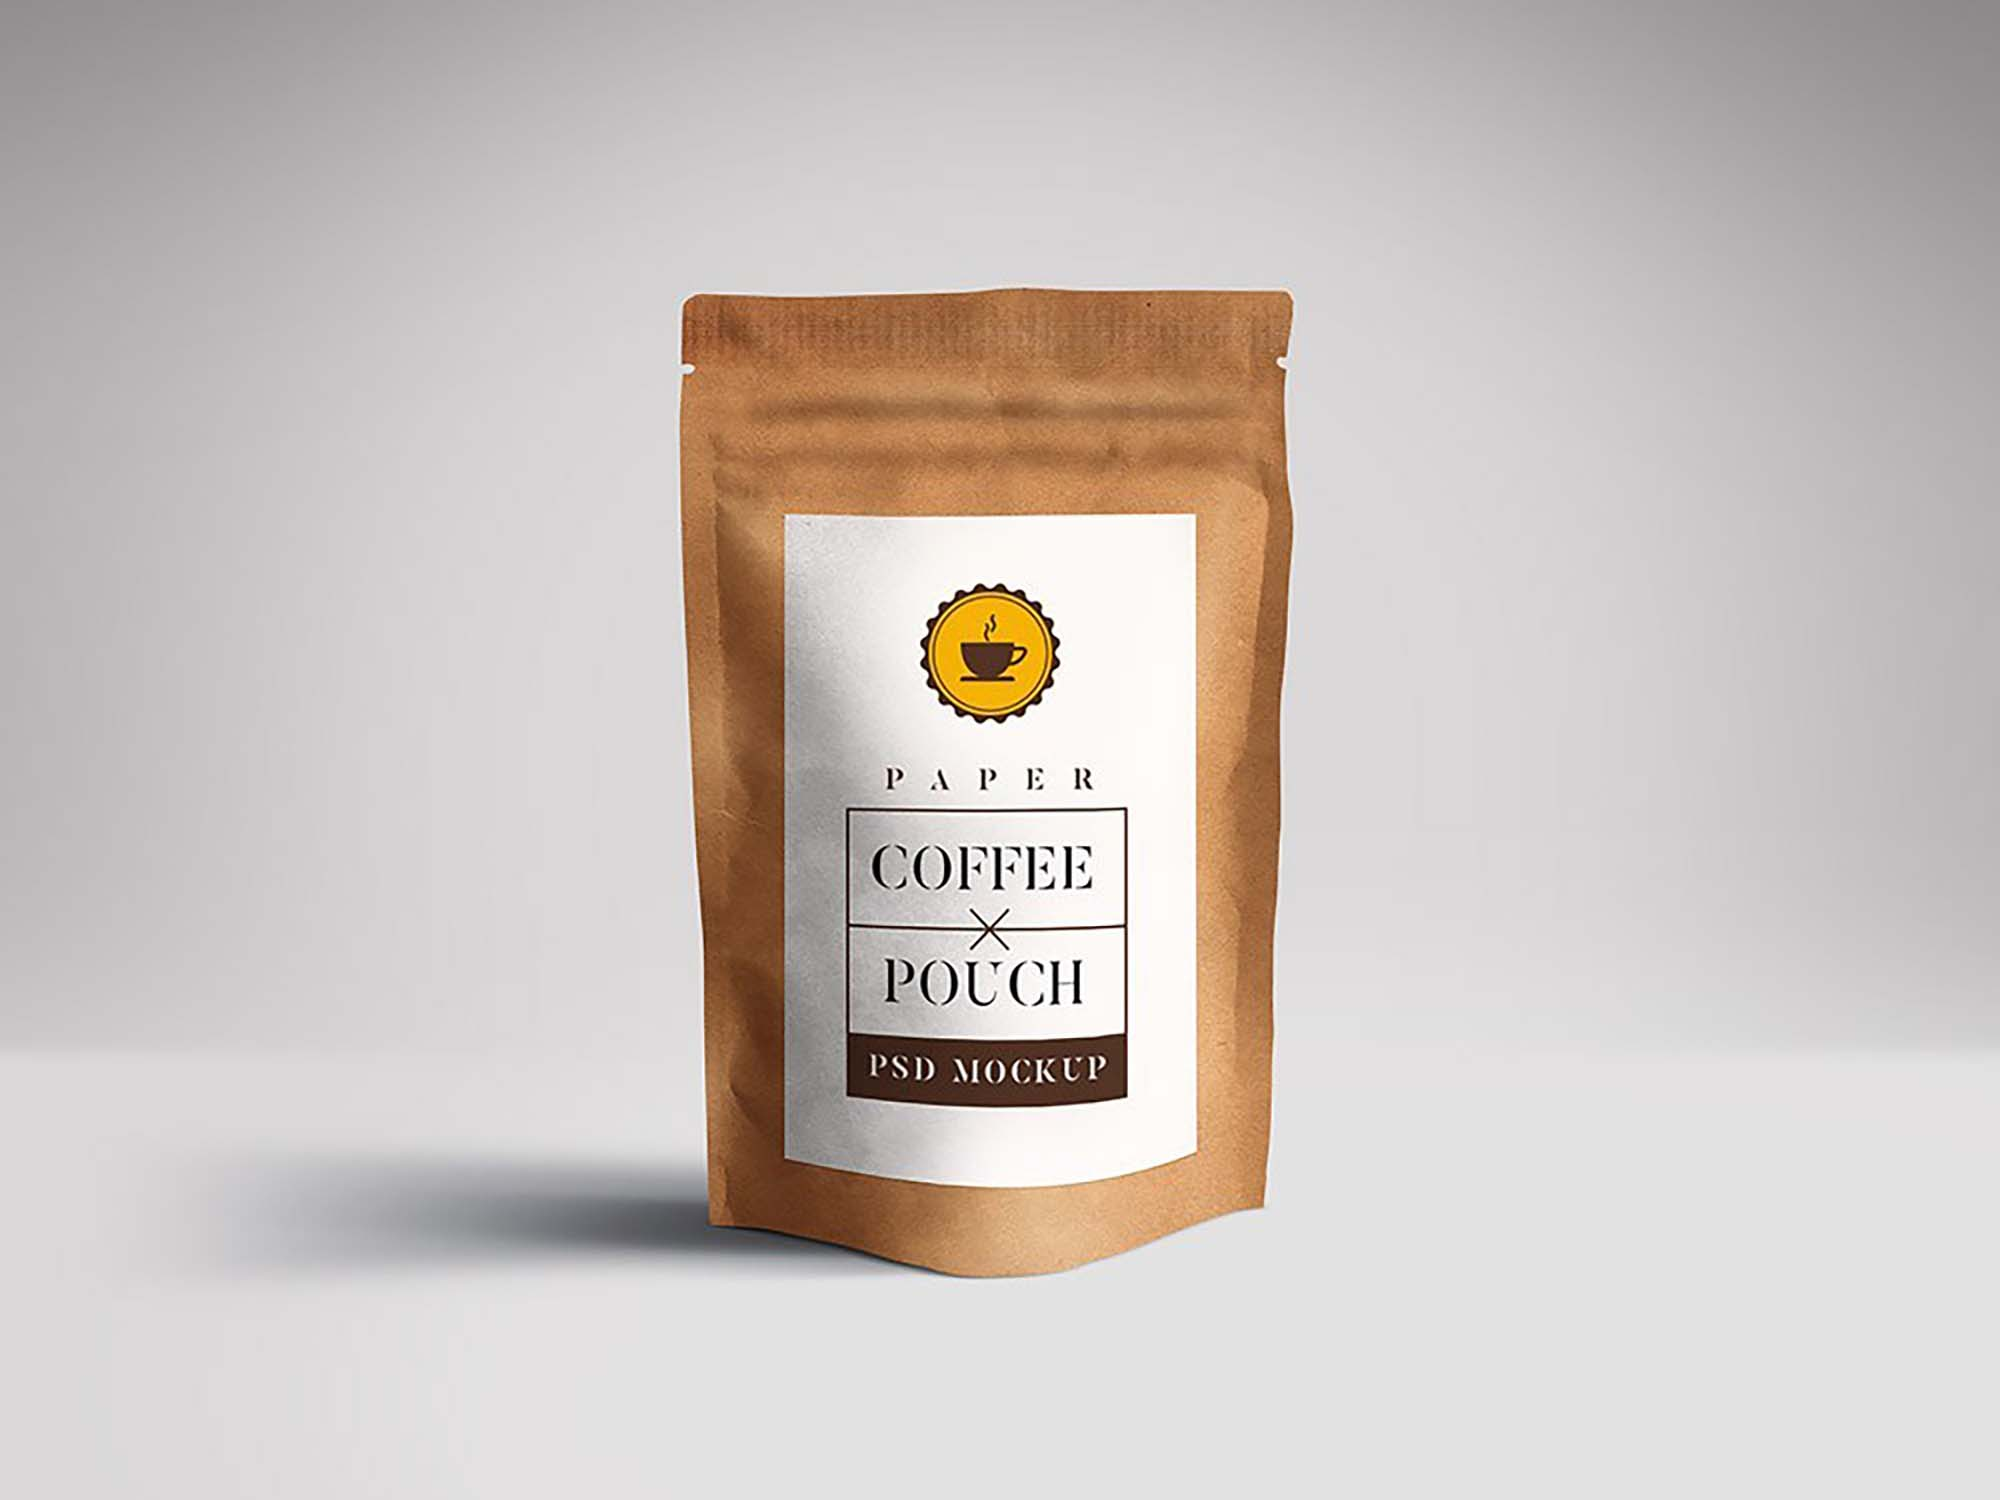 Paper Pouch Packaging Mockup 2